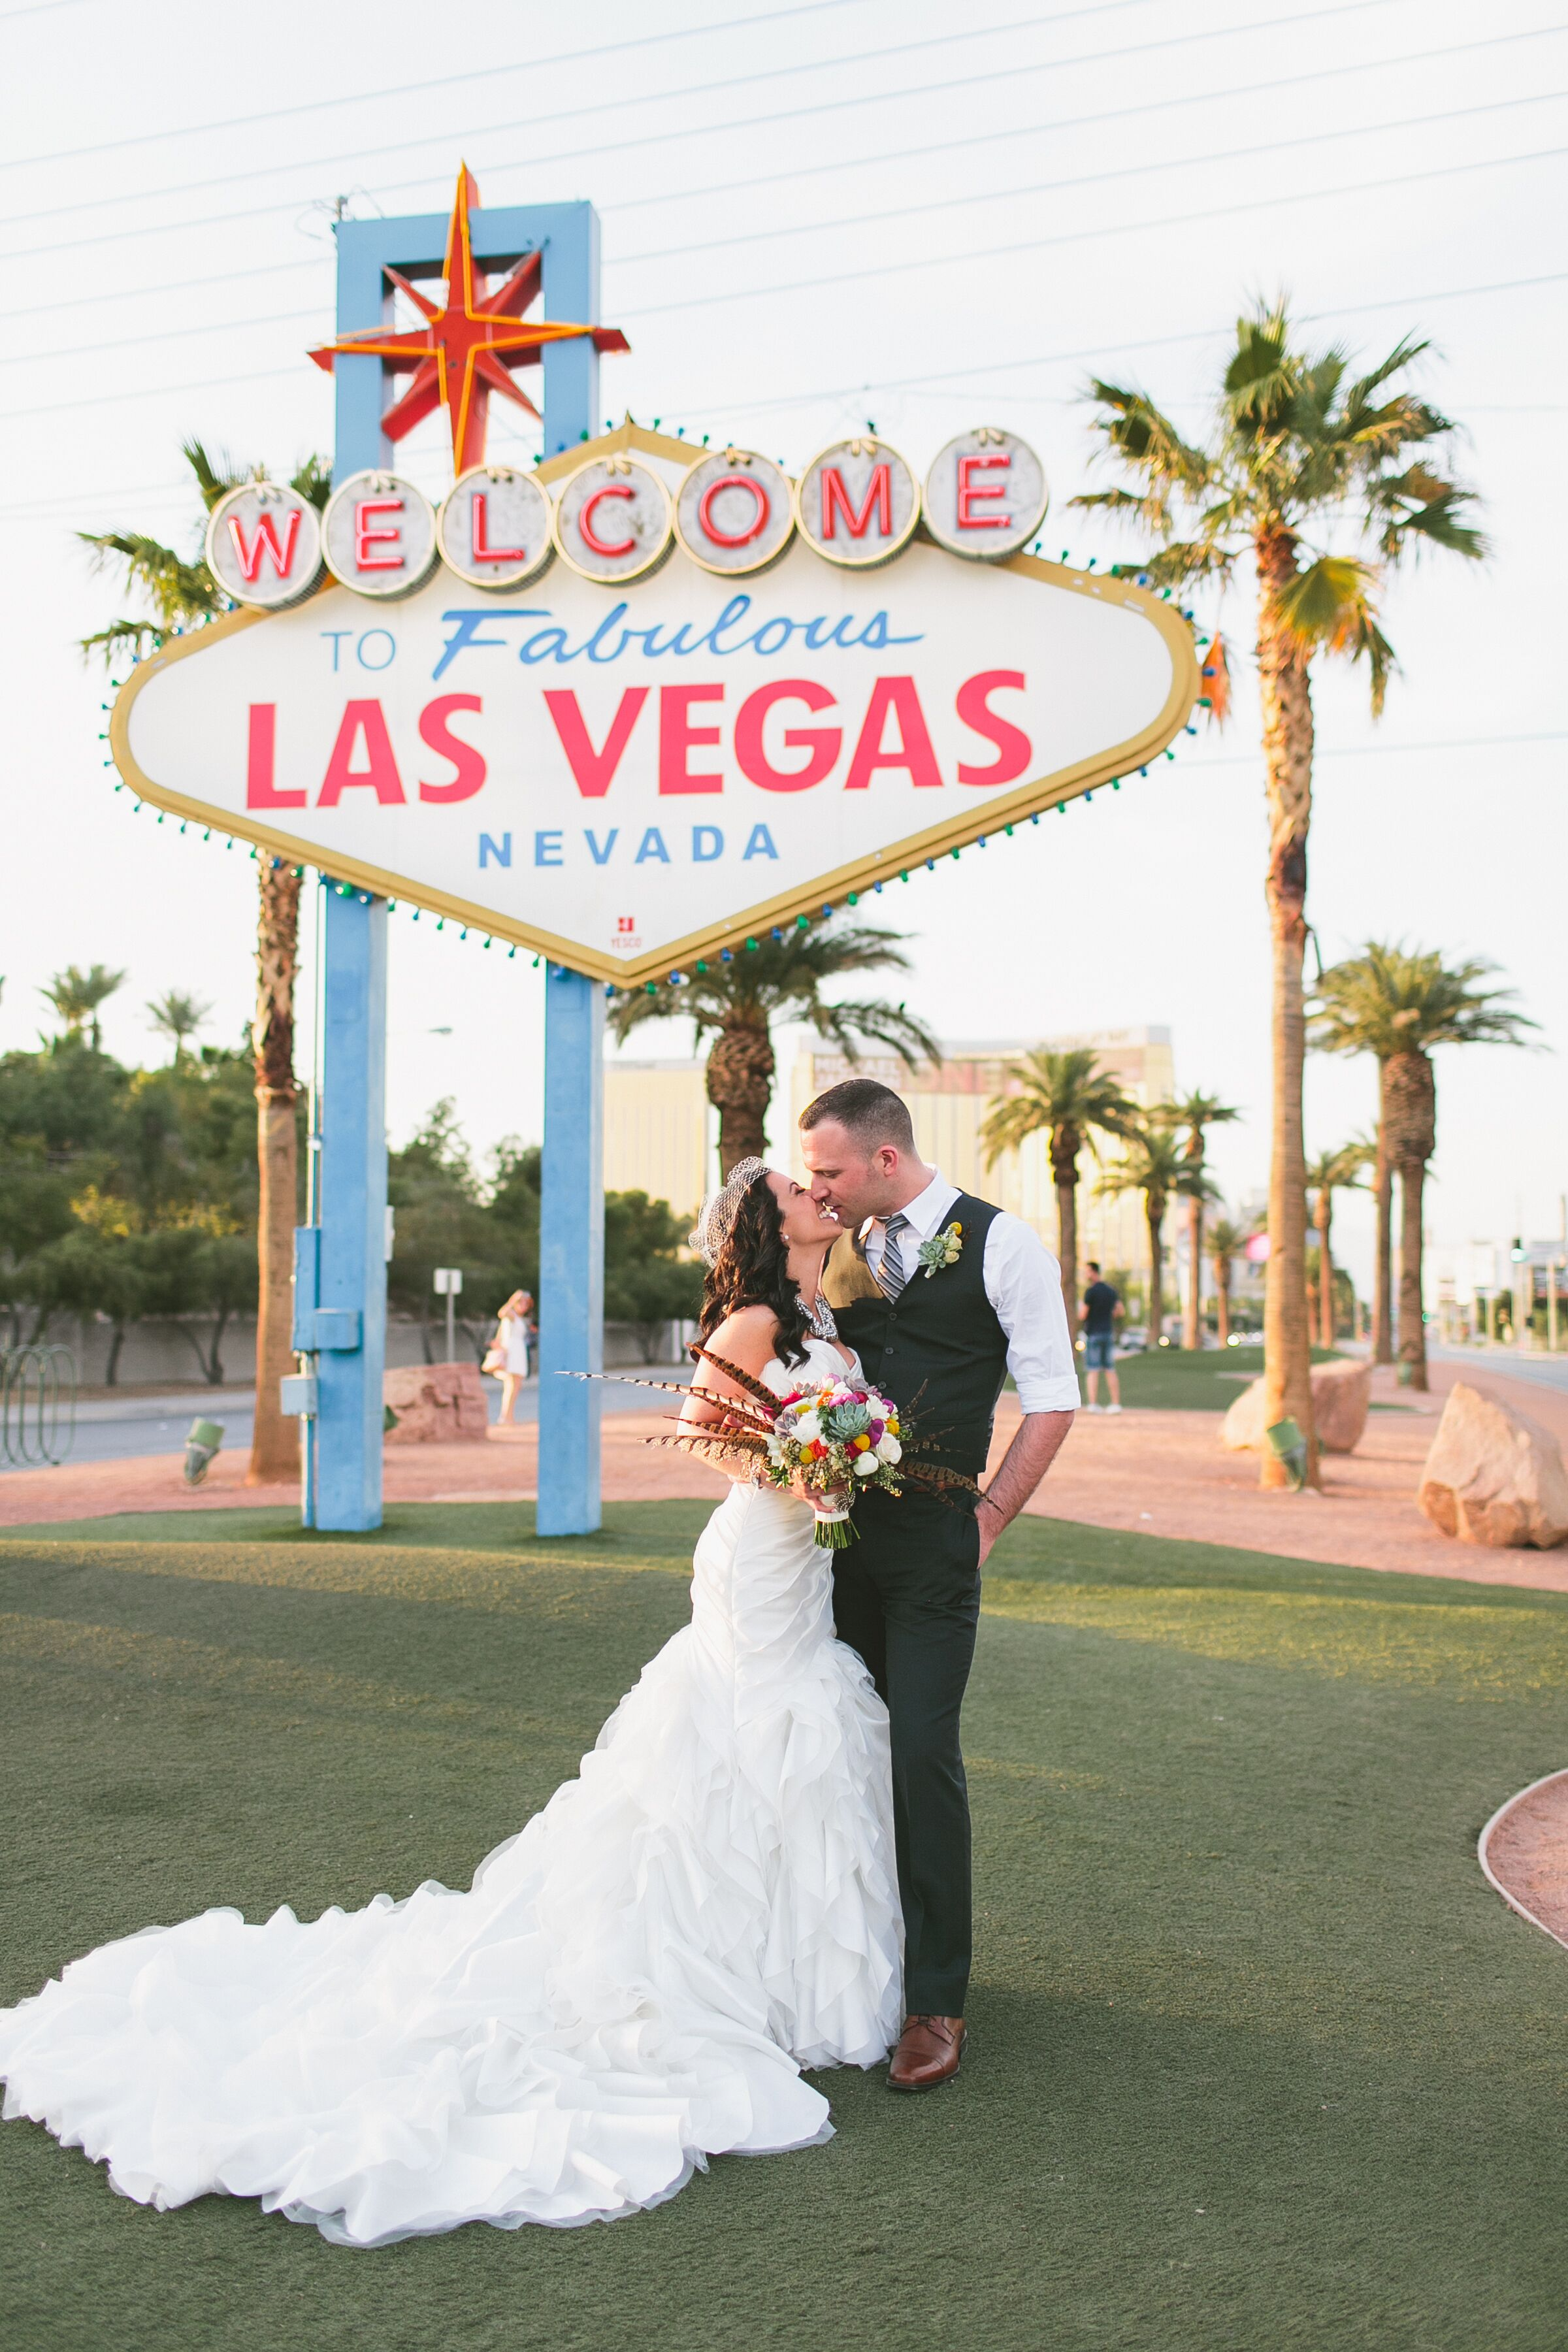 A glamorous vintage inspired destination wedding at for Wedding in las vegas nv